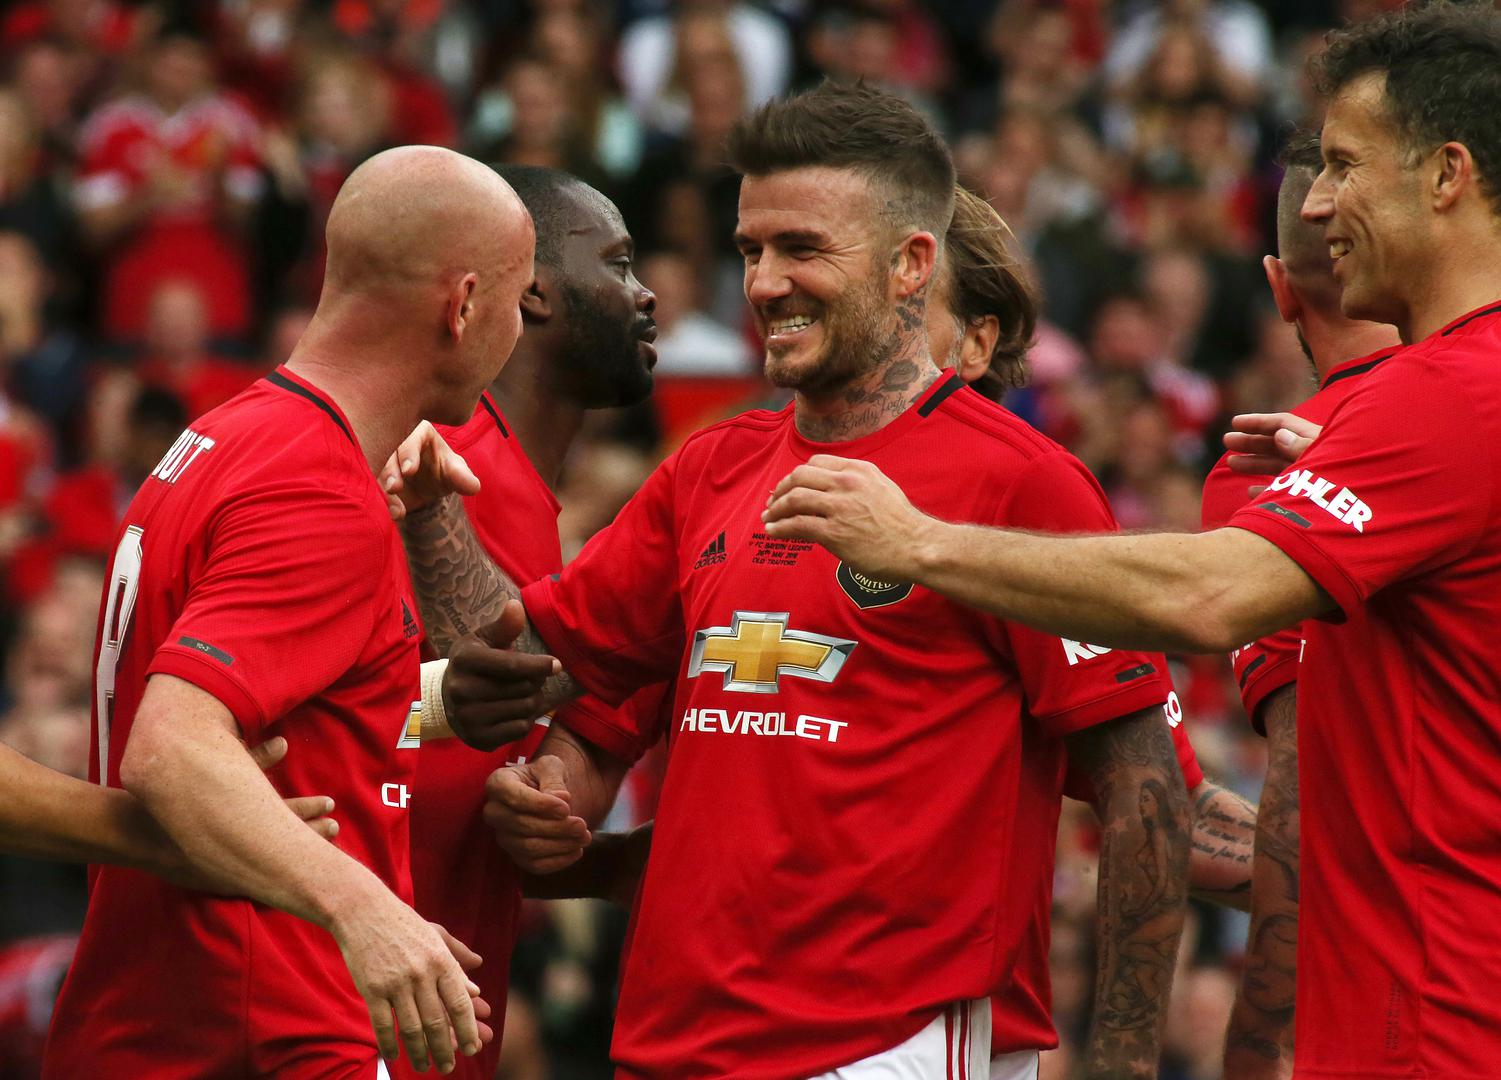 David Beckham celebrates scoring United's fifth goal in the Treble Reunion game at Old Trafford